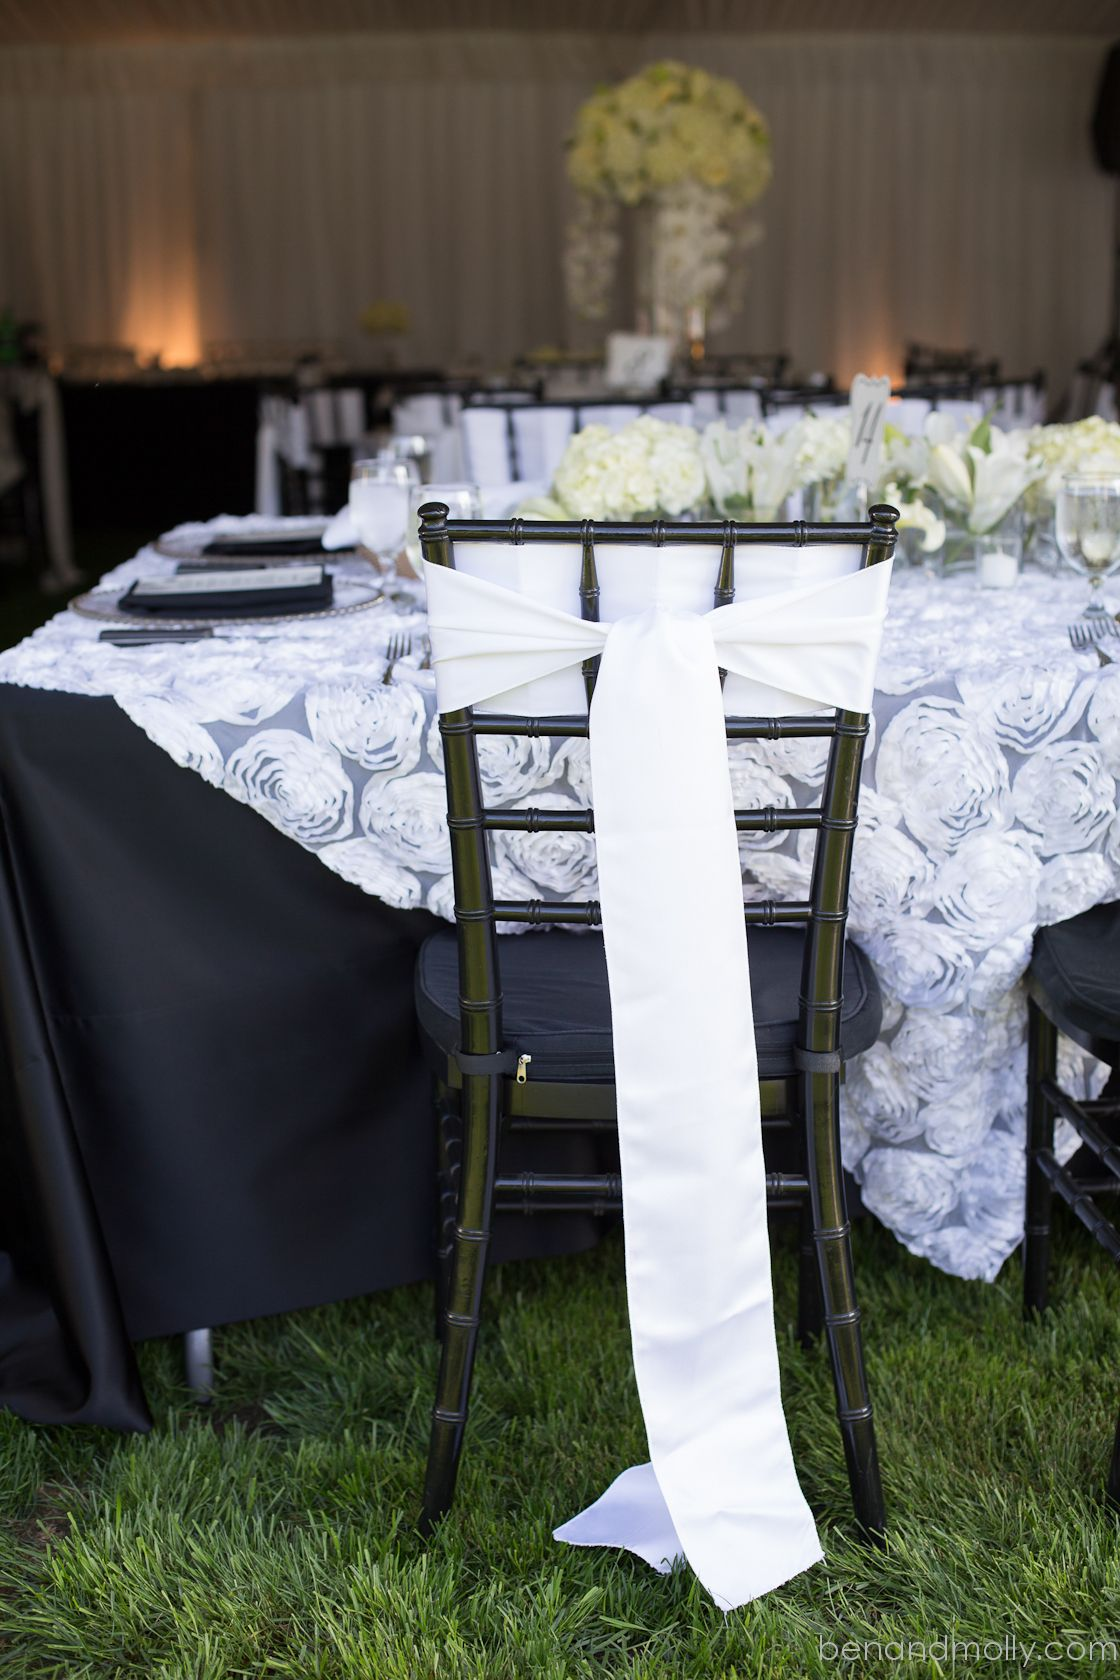 Wedding Chair Covers Rentals Seattle Top Pc Gaming Chairs Brittany Christopher Photography By Ben Molly Black And White Decorations Cover With Modern Tie Photographers